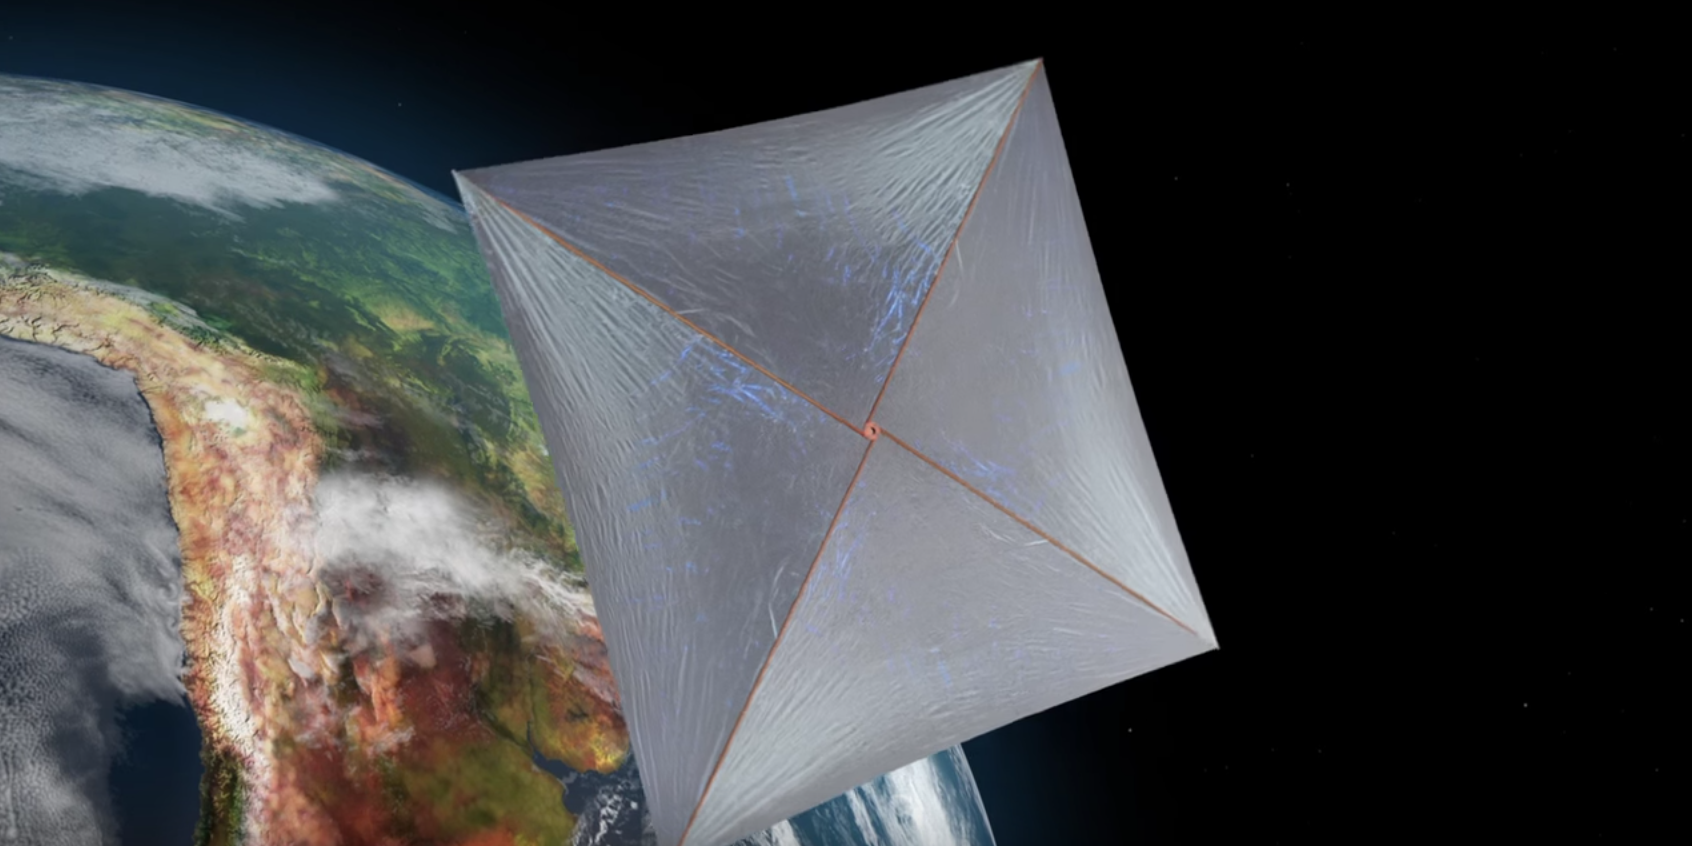 There are challenges to overcome regarding Breakthrough Starshot.